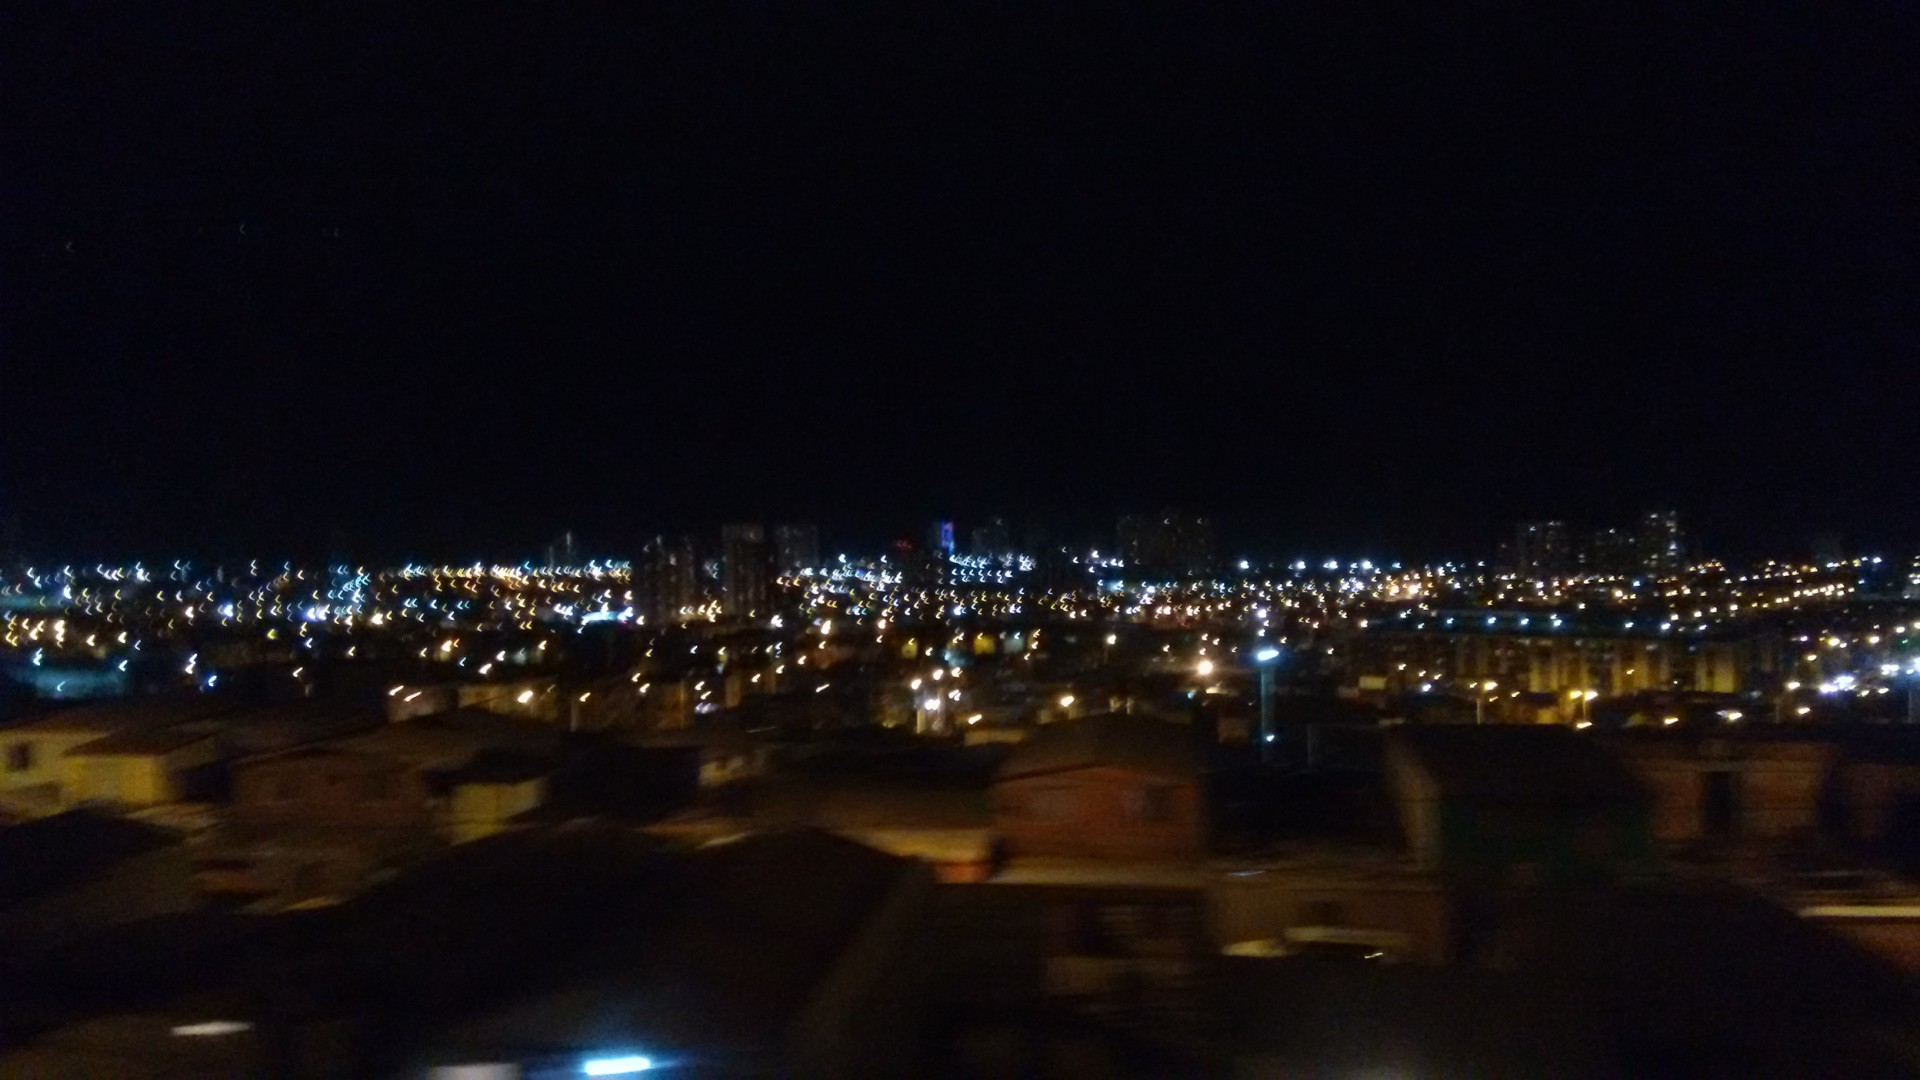 Iquique at night. Through a bus window.